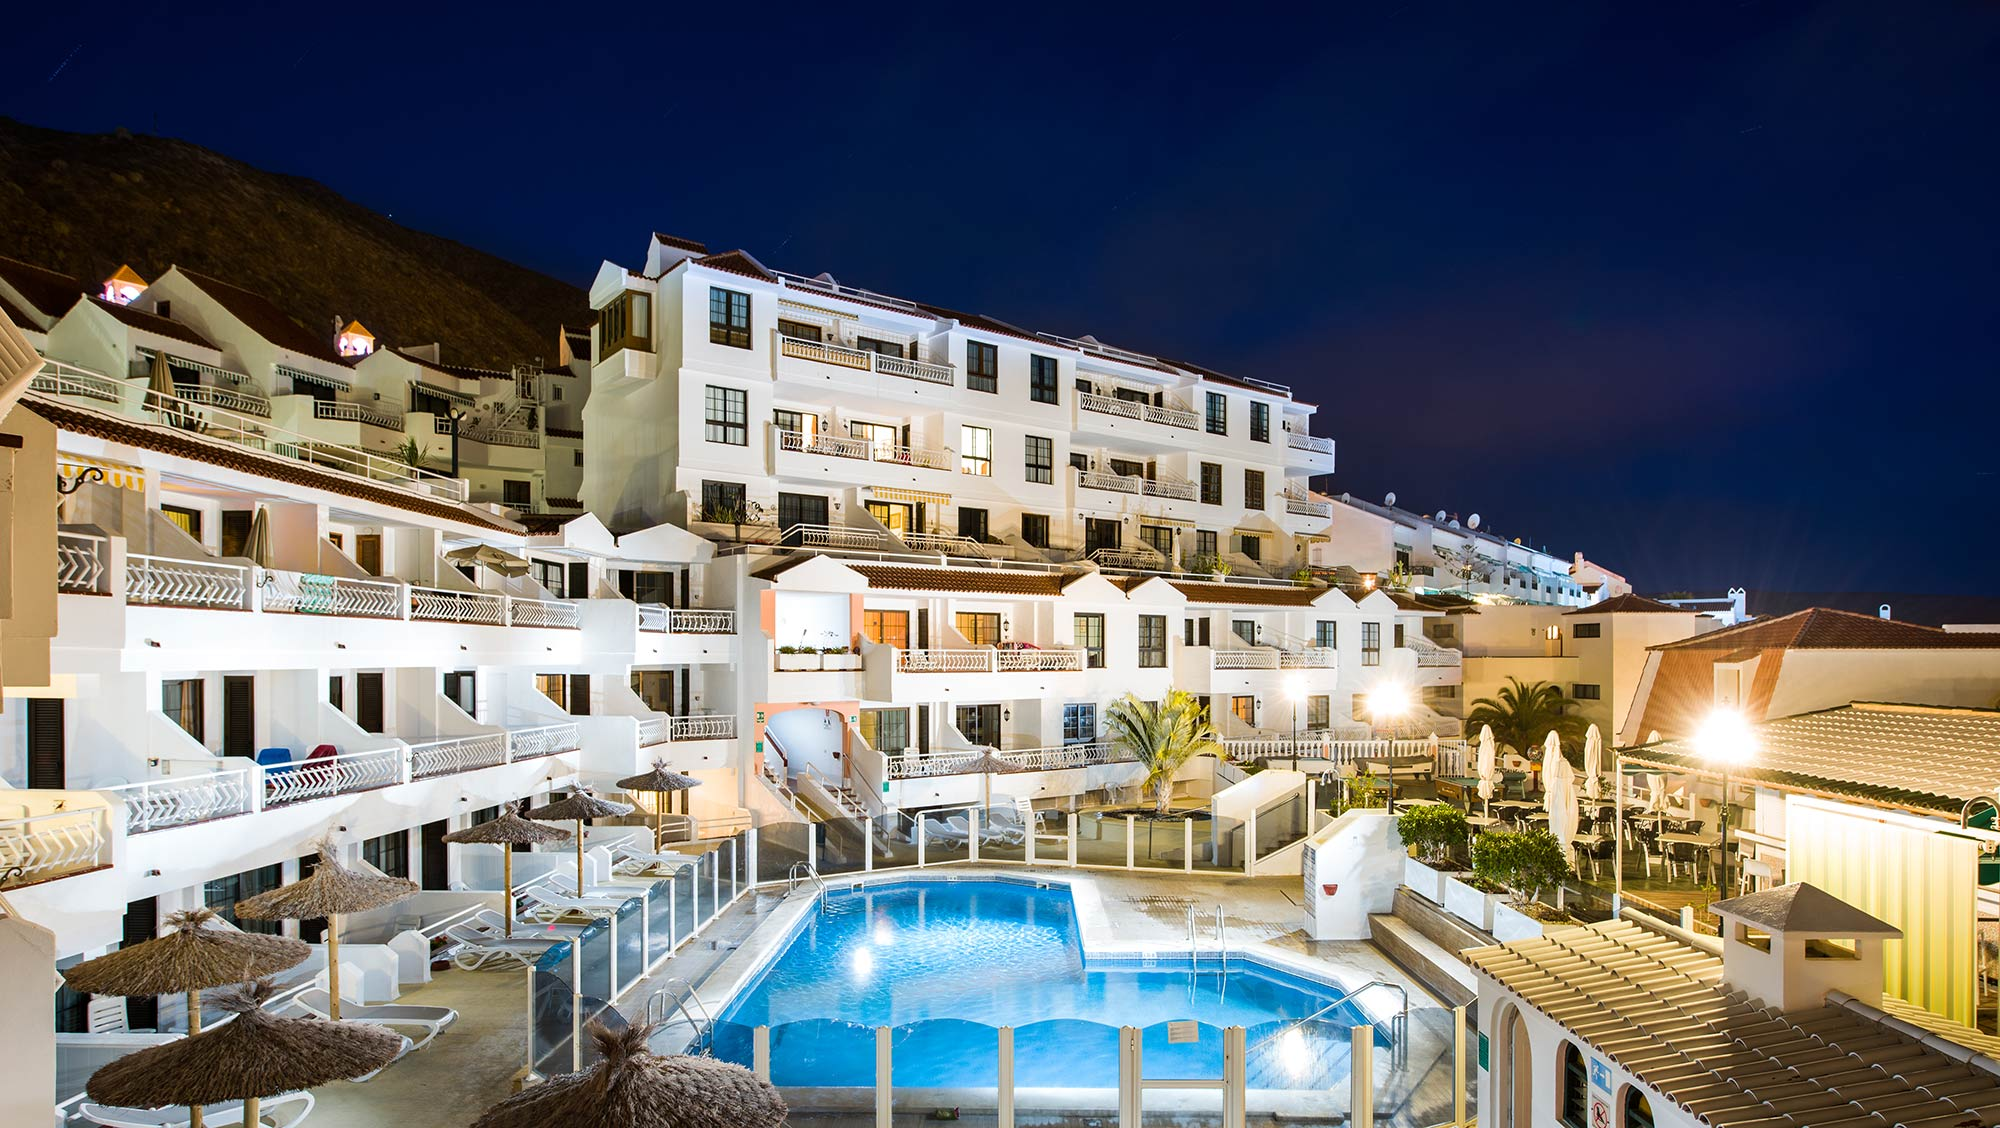 Club Tenerife | Holiday Resort Los Cristianos Tenerife